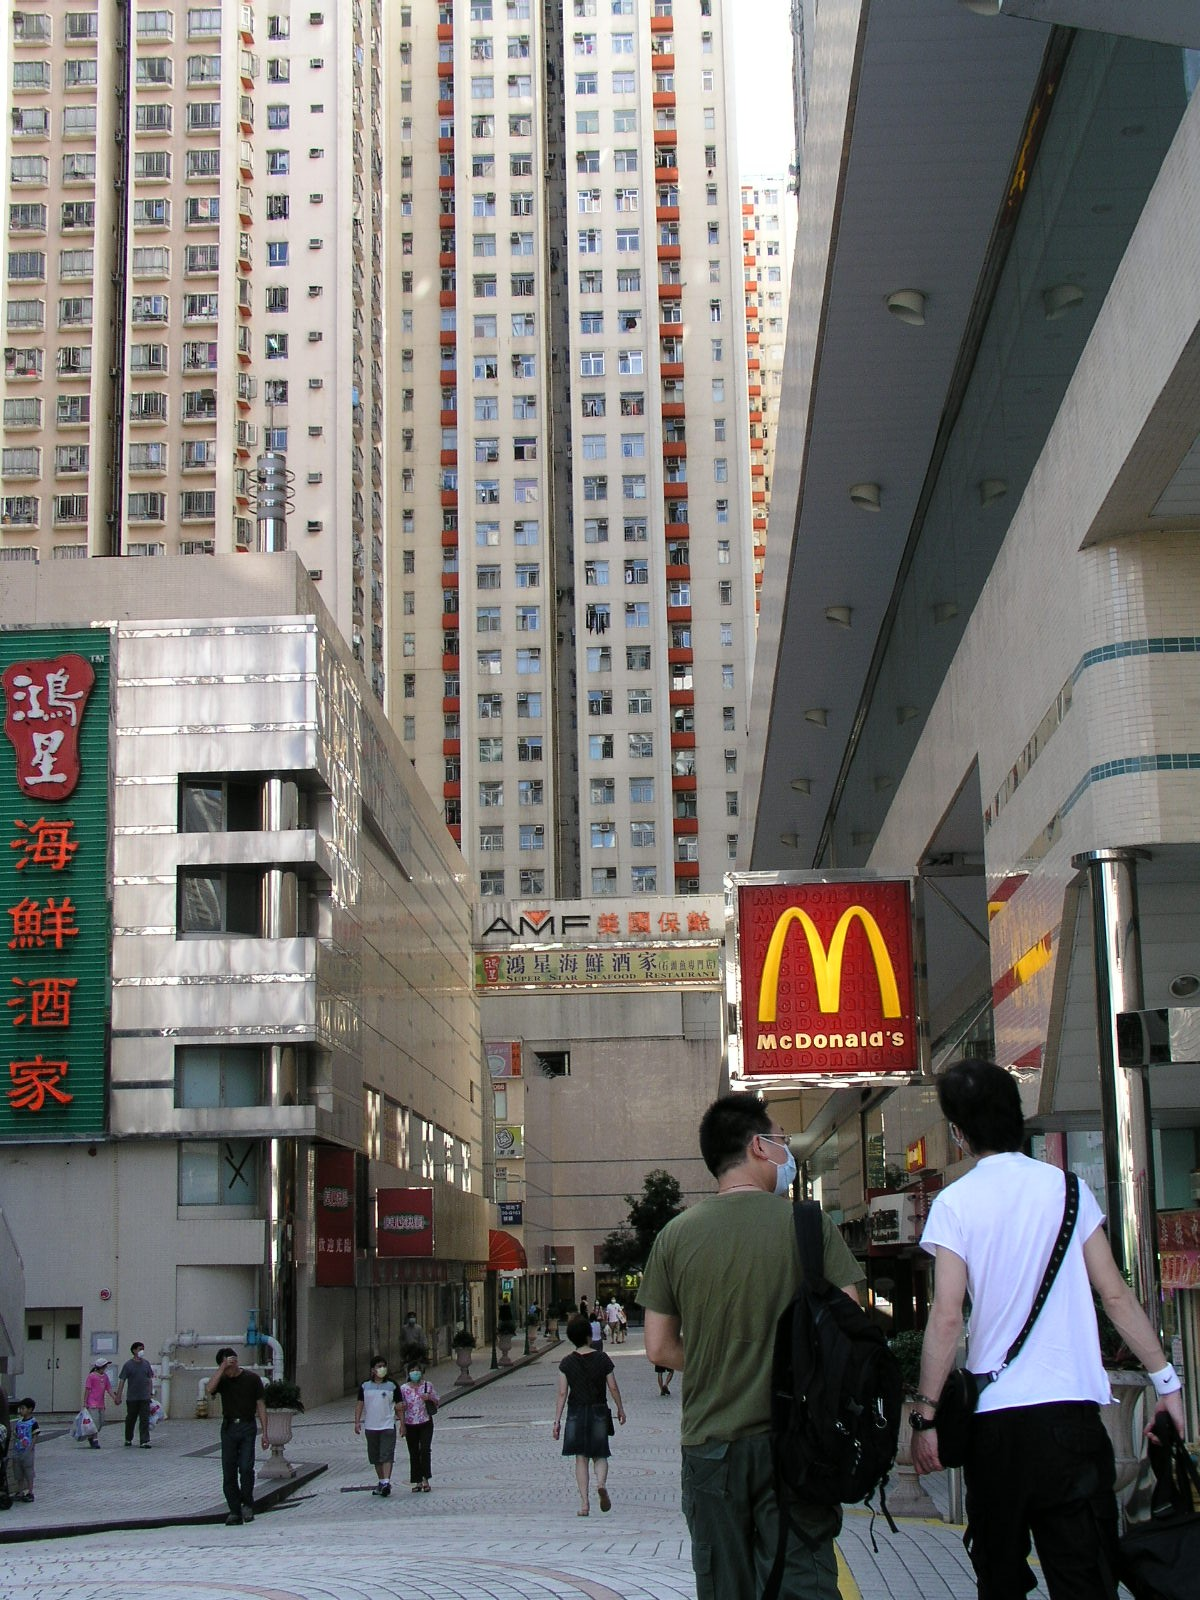 The Amoy Gardens condo complex has the highest incidence of SARS in Hong Kong .JPG